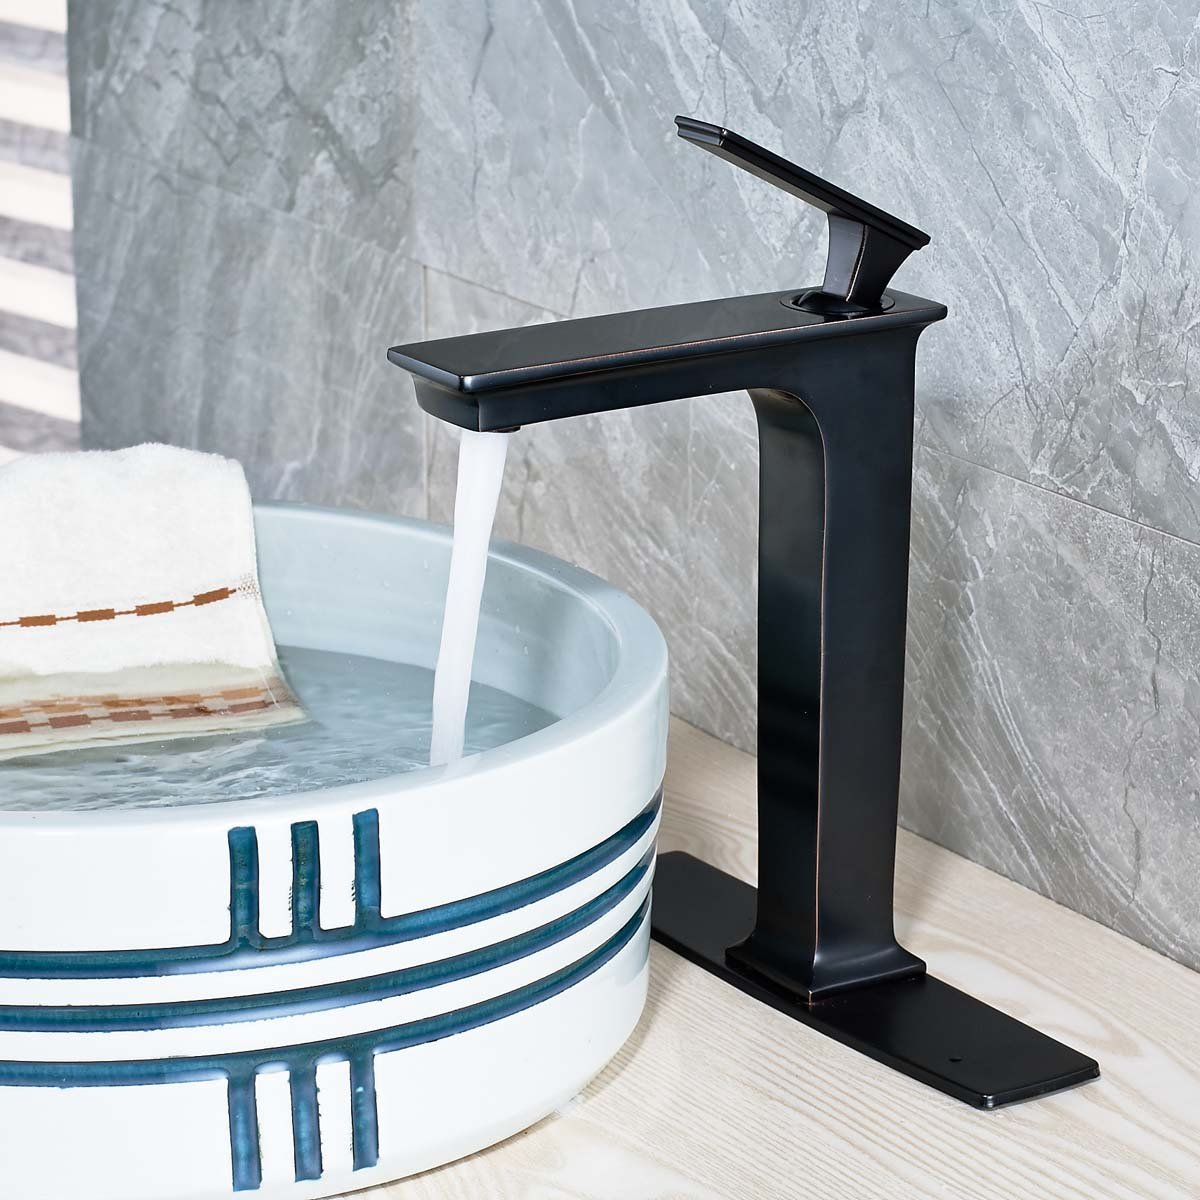 Attractive Bamboo Faucet Ideas - Faucet Collections - thoughtfire.info